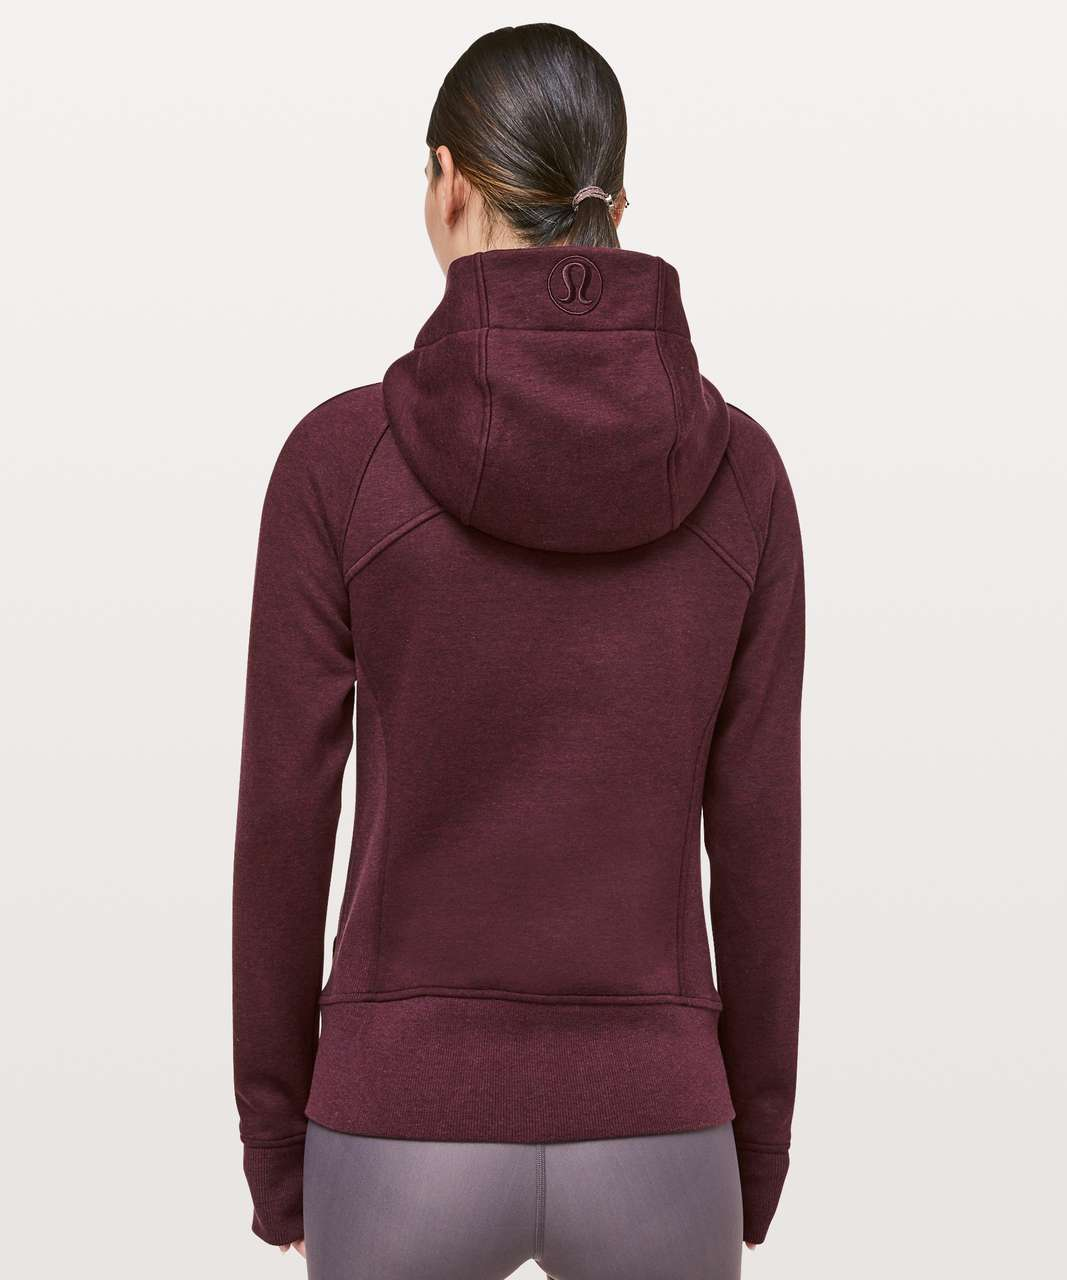 Lululemon Light As Warmth Scuba Hoodie - Heathered Dark Adobe